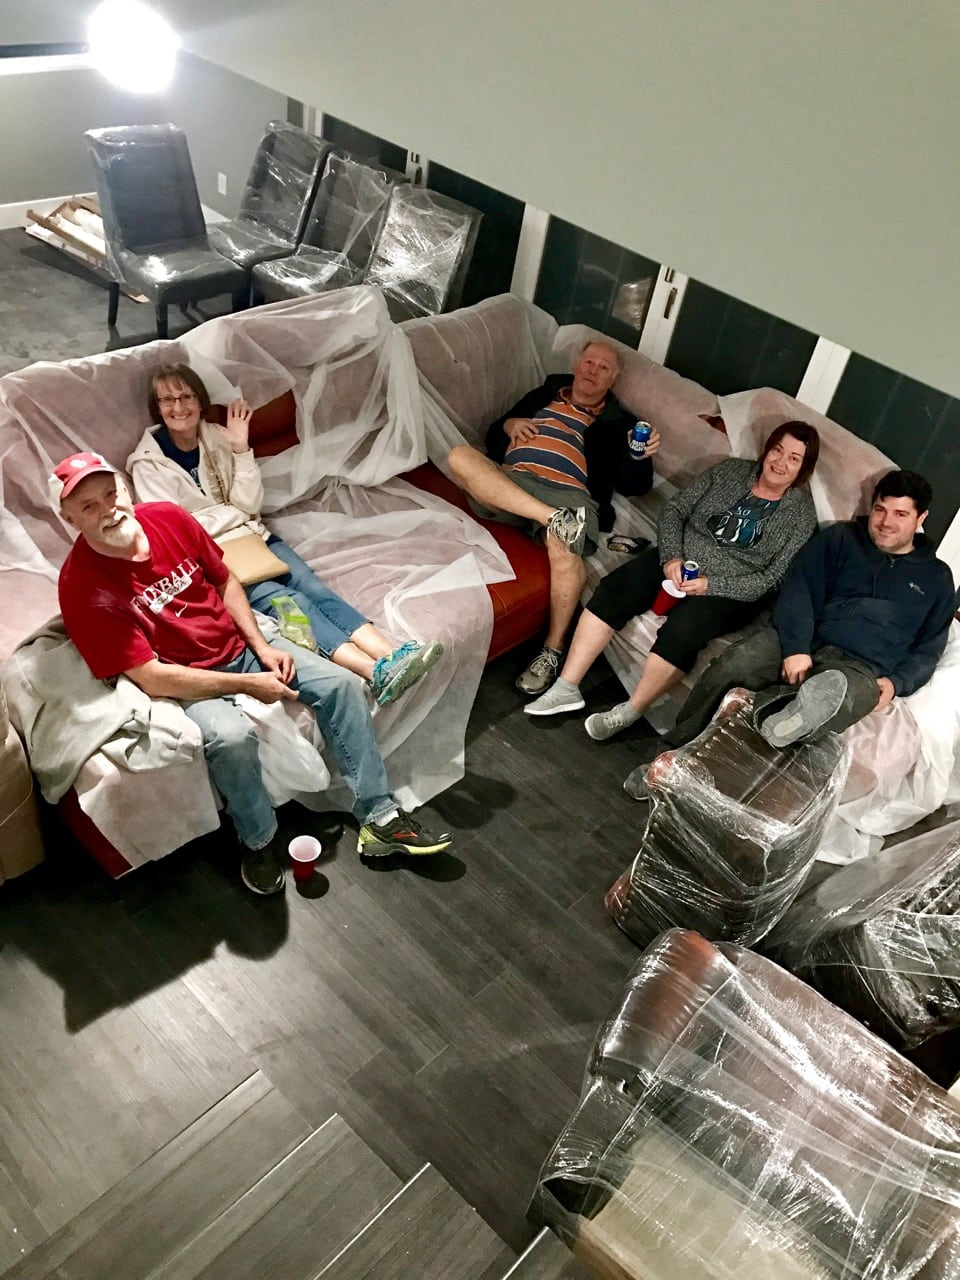 Family on couch after moving